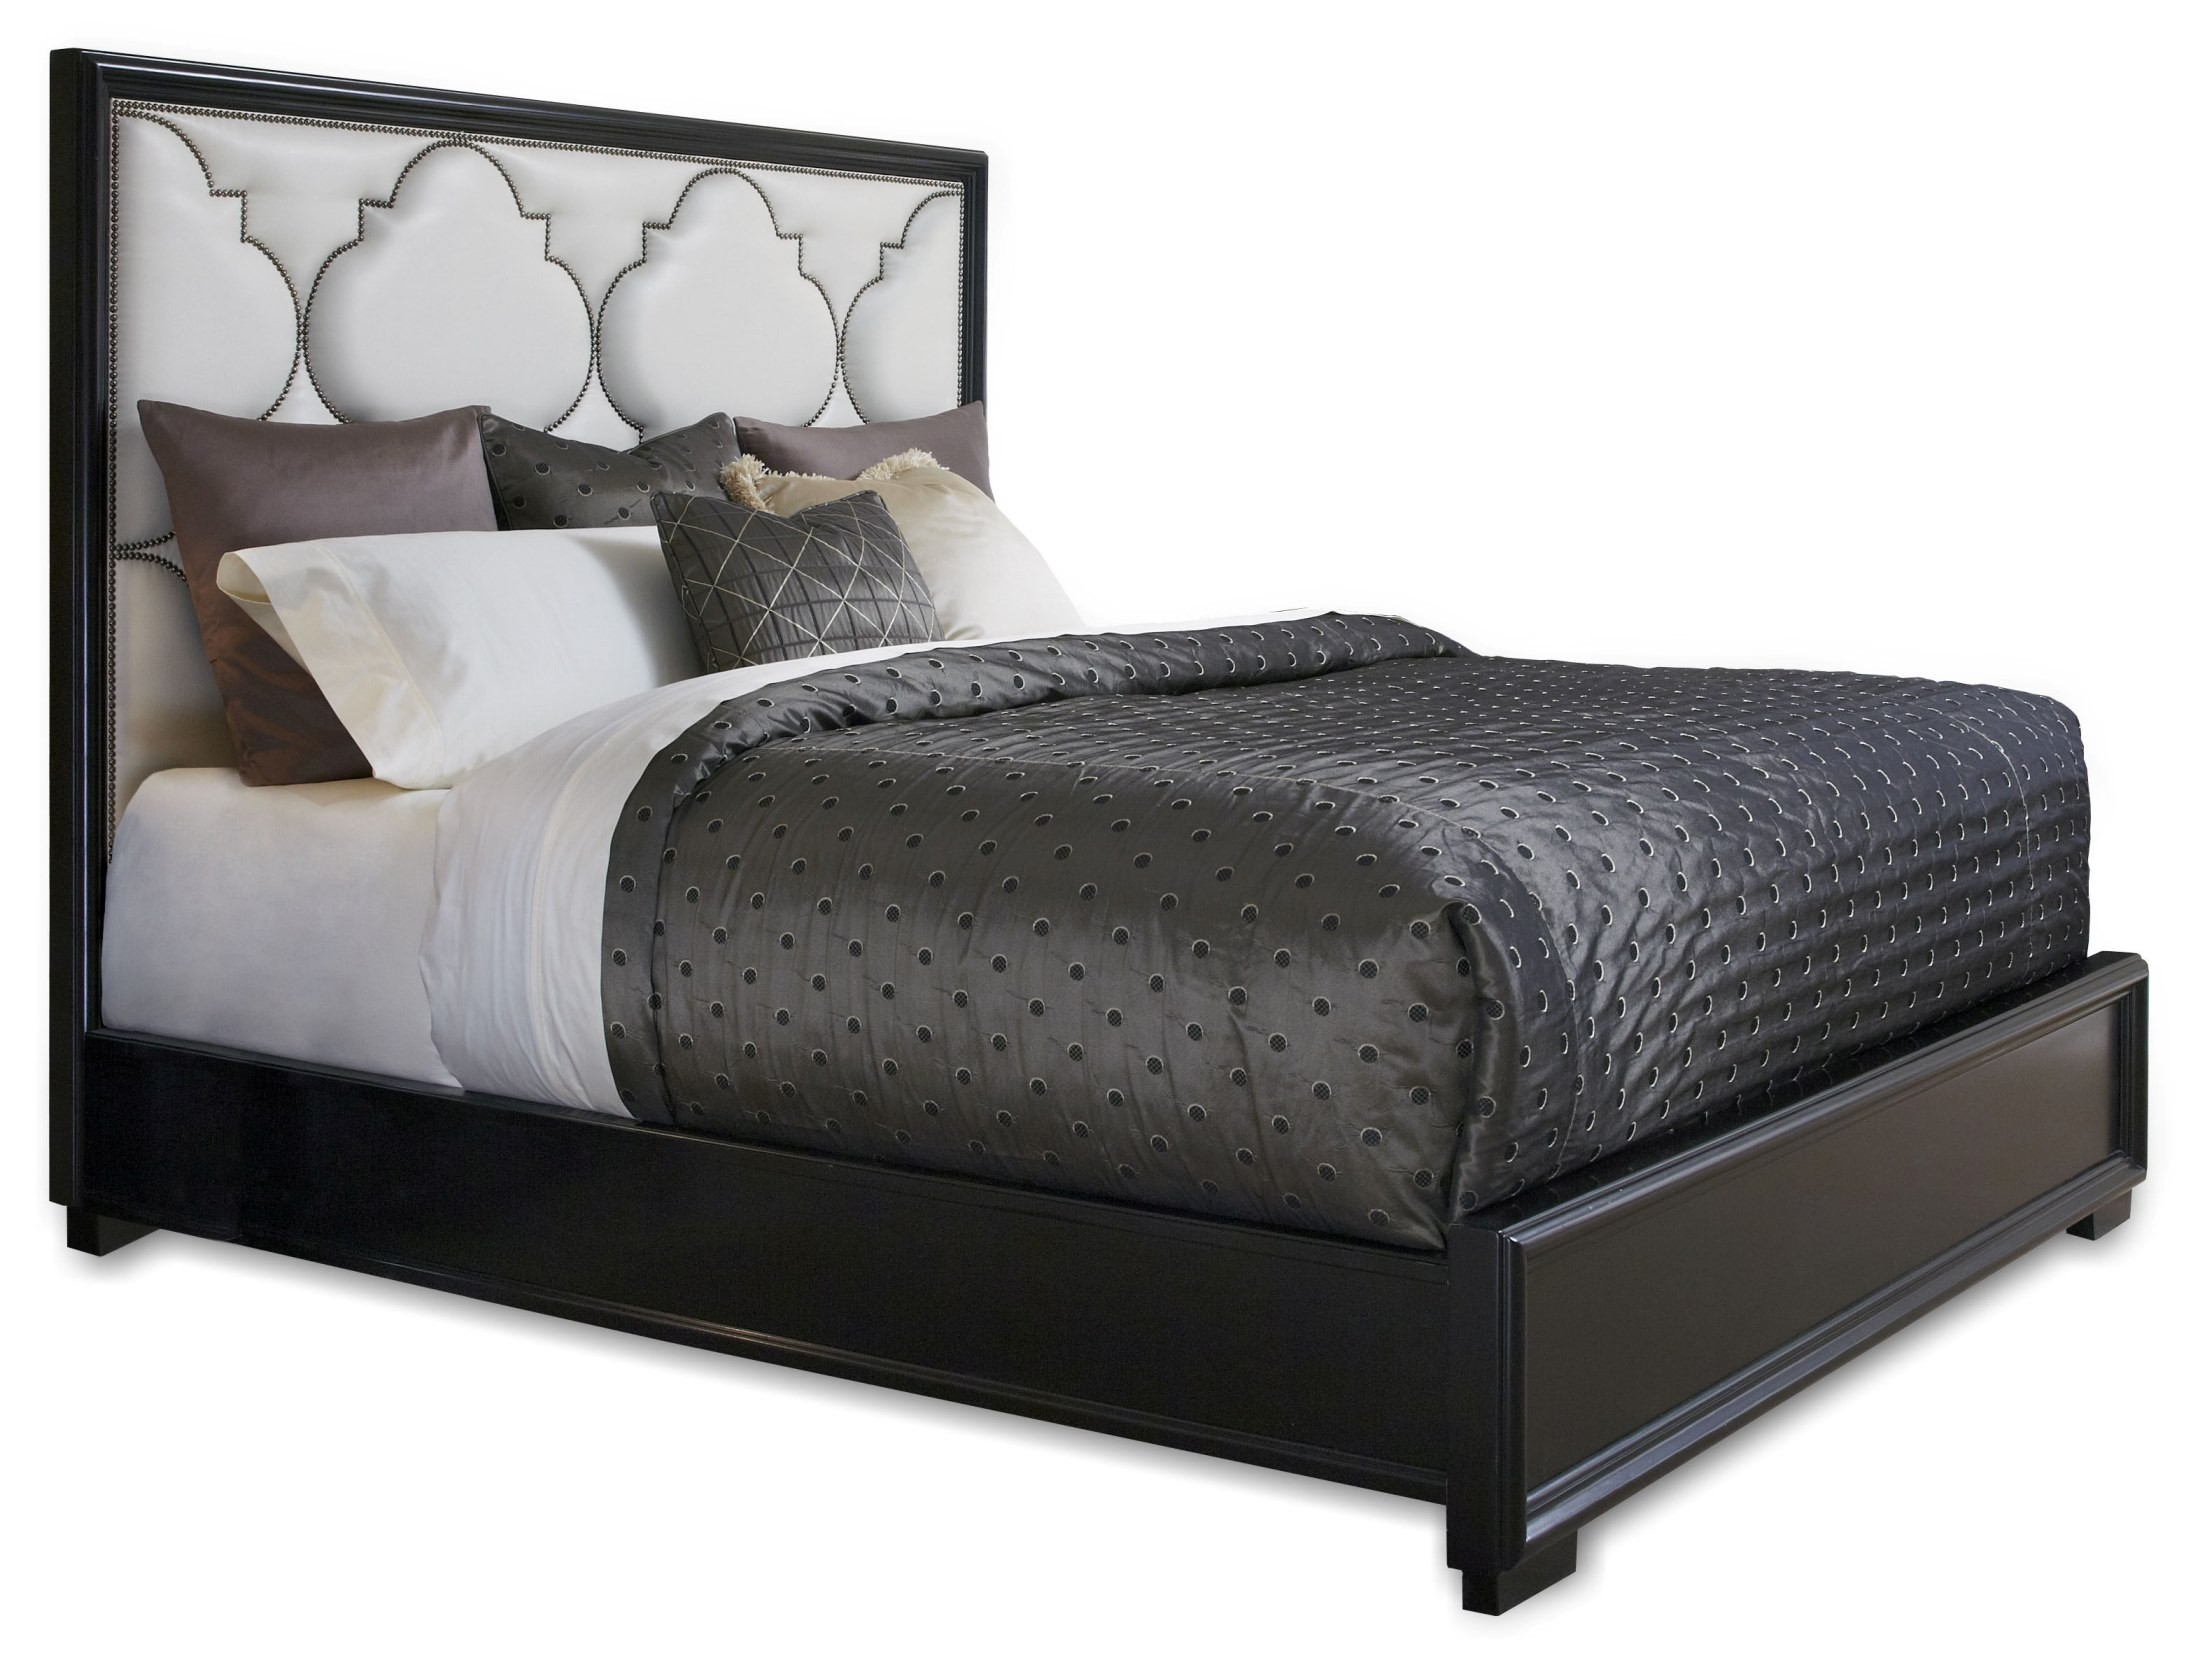 Ebony Beds 78